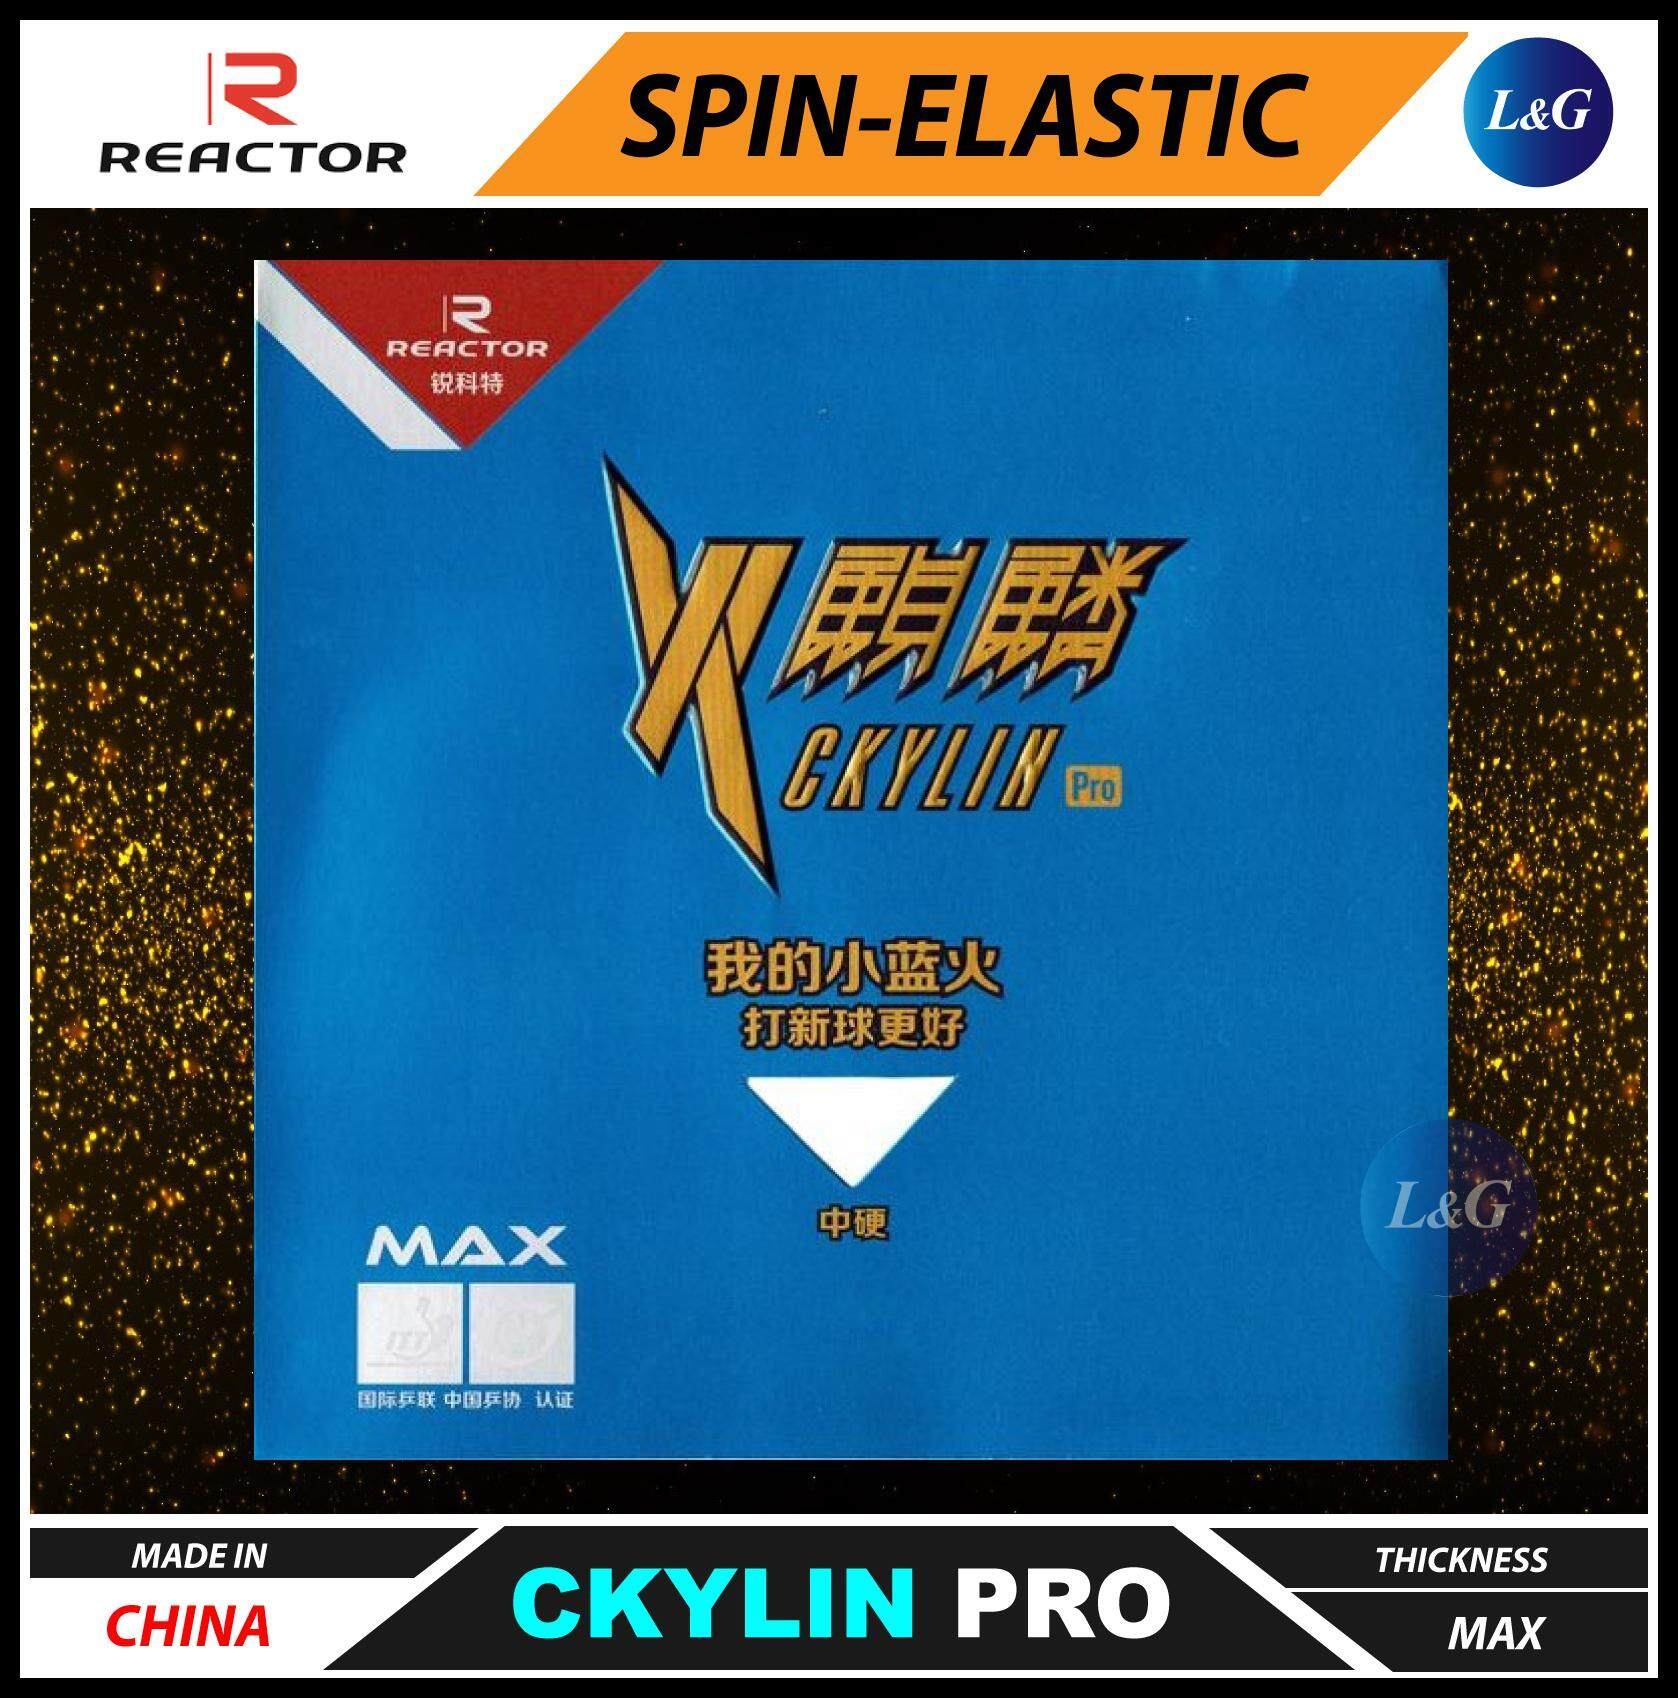 Reactor Ckylin Pro Spin-Elastic Inverted Table Tennis Ping Pong Rubber Max ITTF Approved